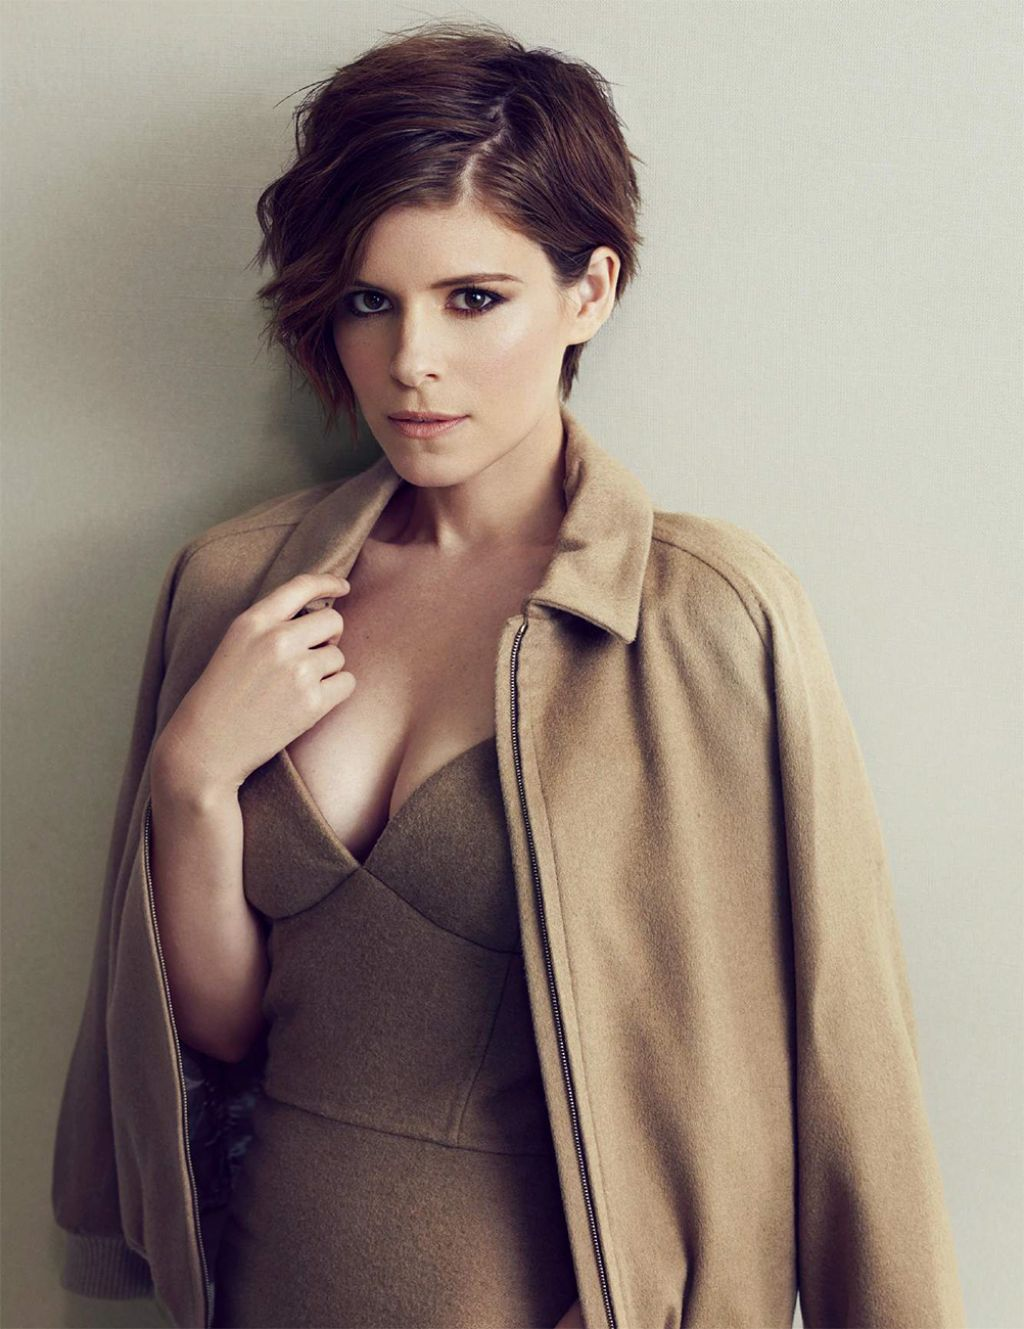 Kate Mara Hot Bikini Pics, Looks Near-Nude On Beach